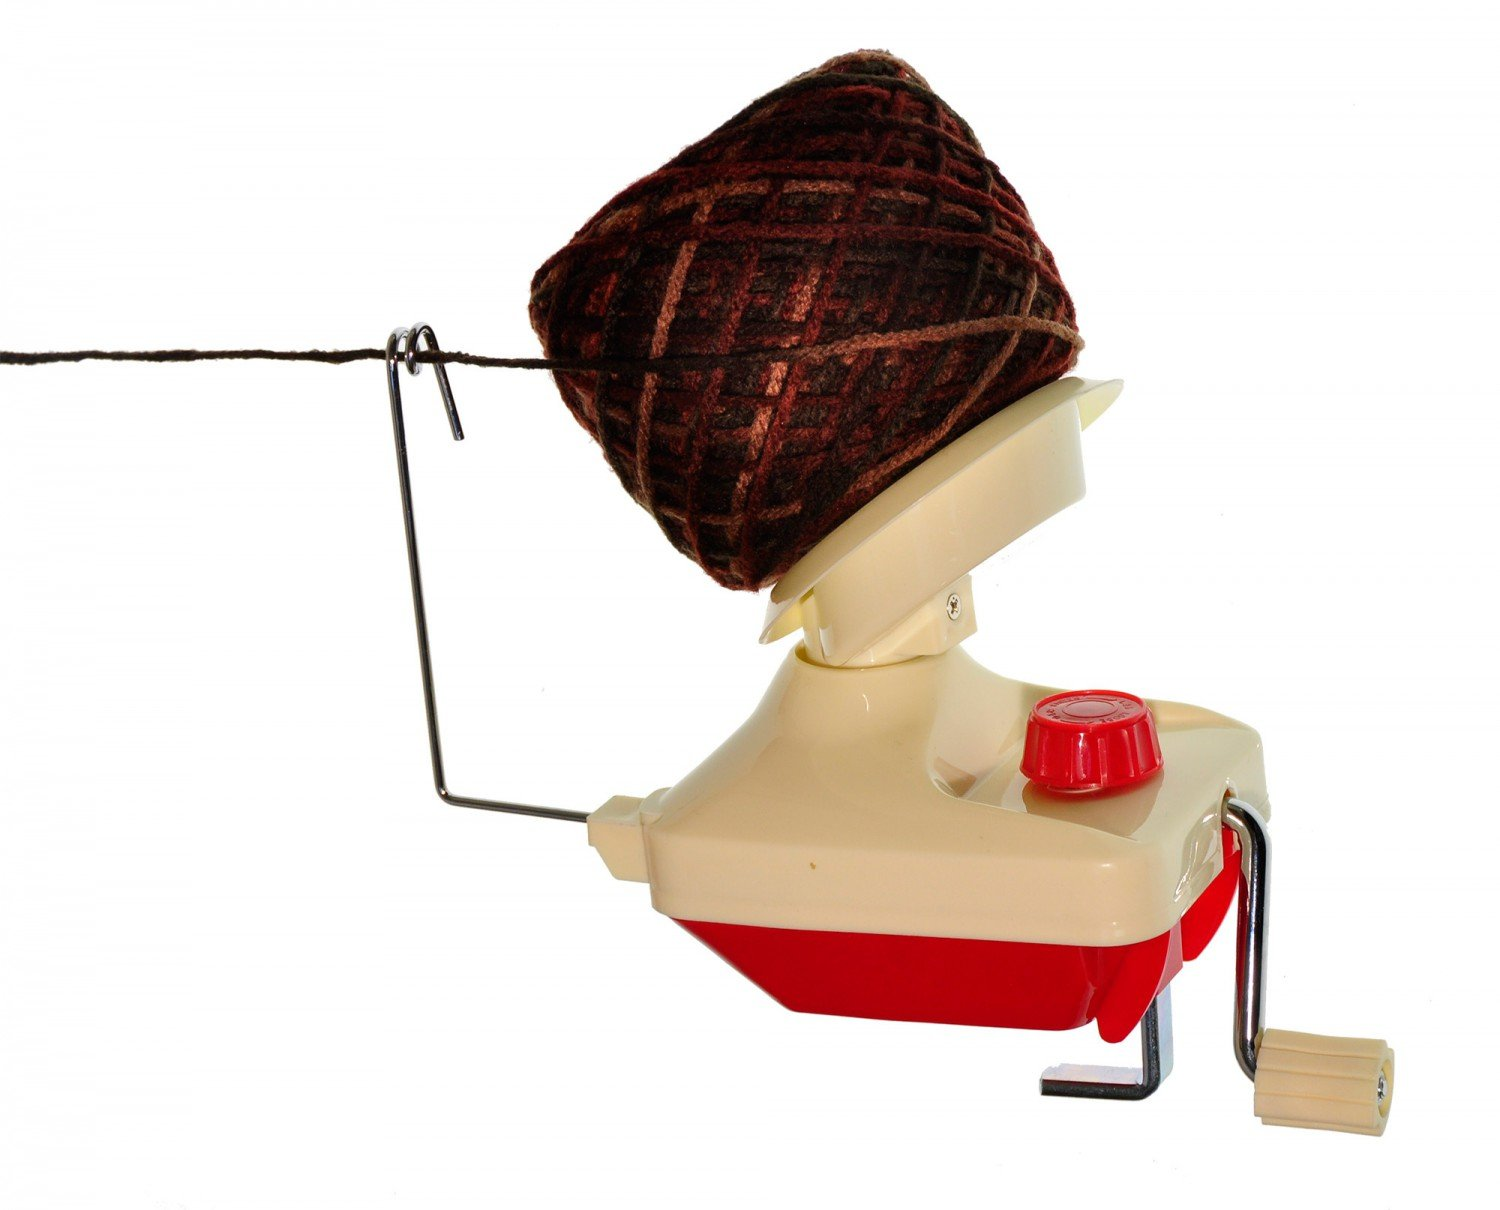 Ball Winder by Lacis